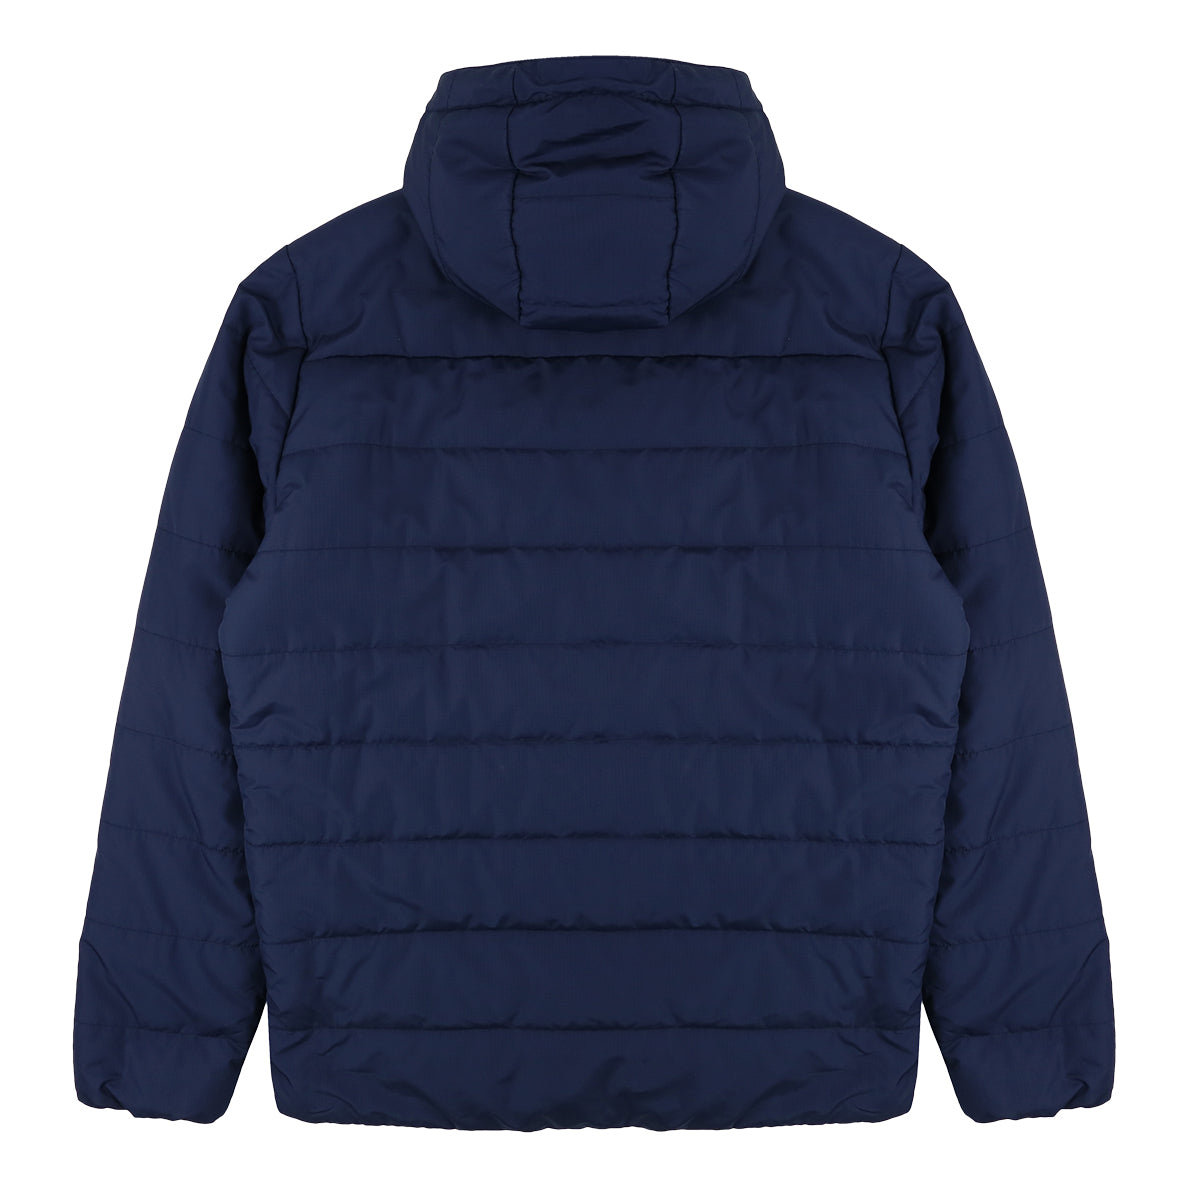 Patrol Insulated Jacket - Navy image 9